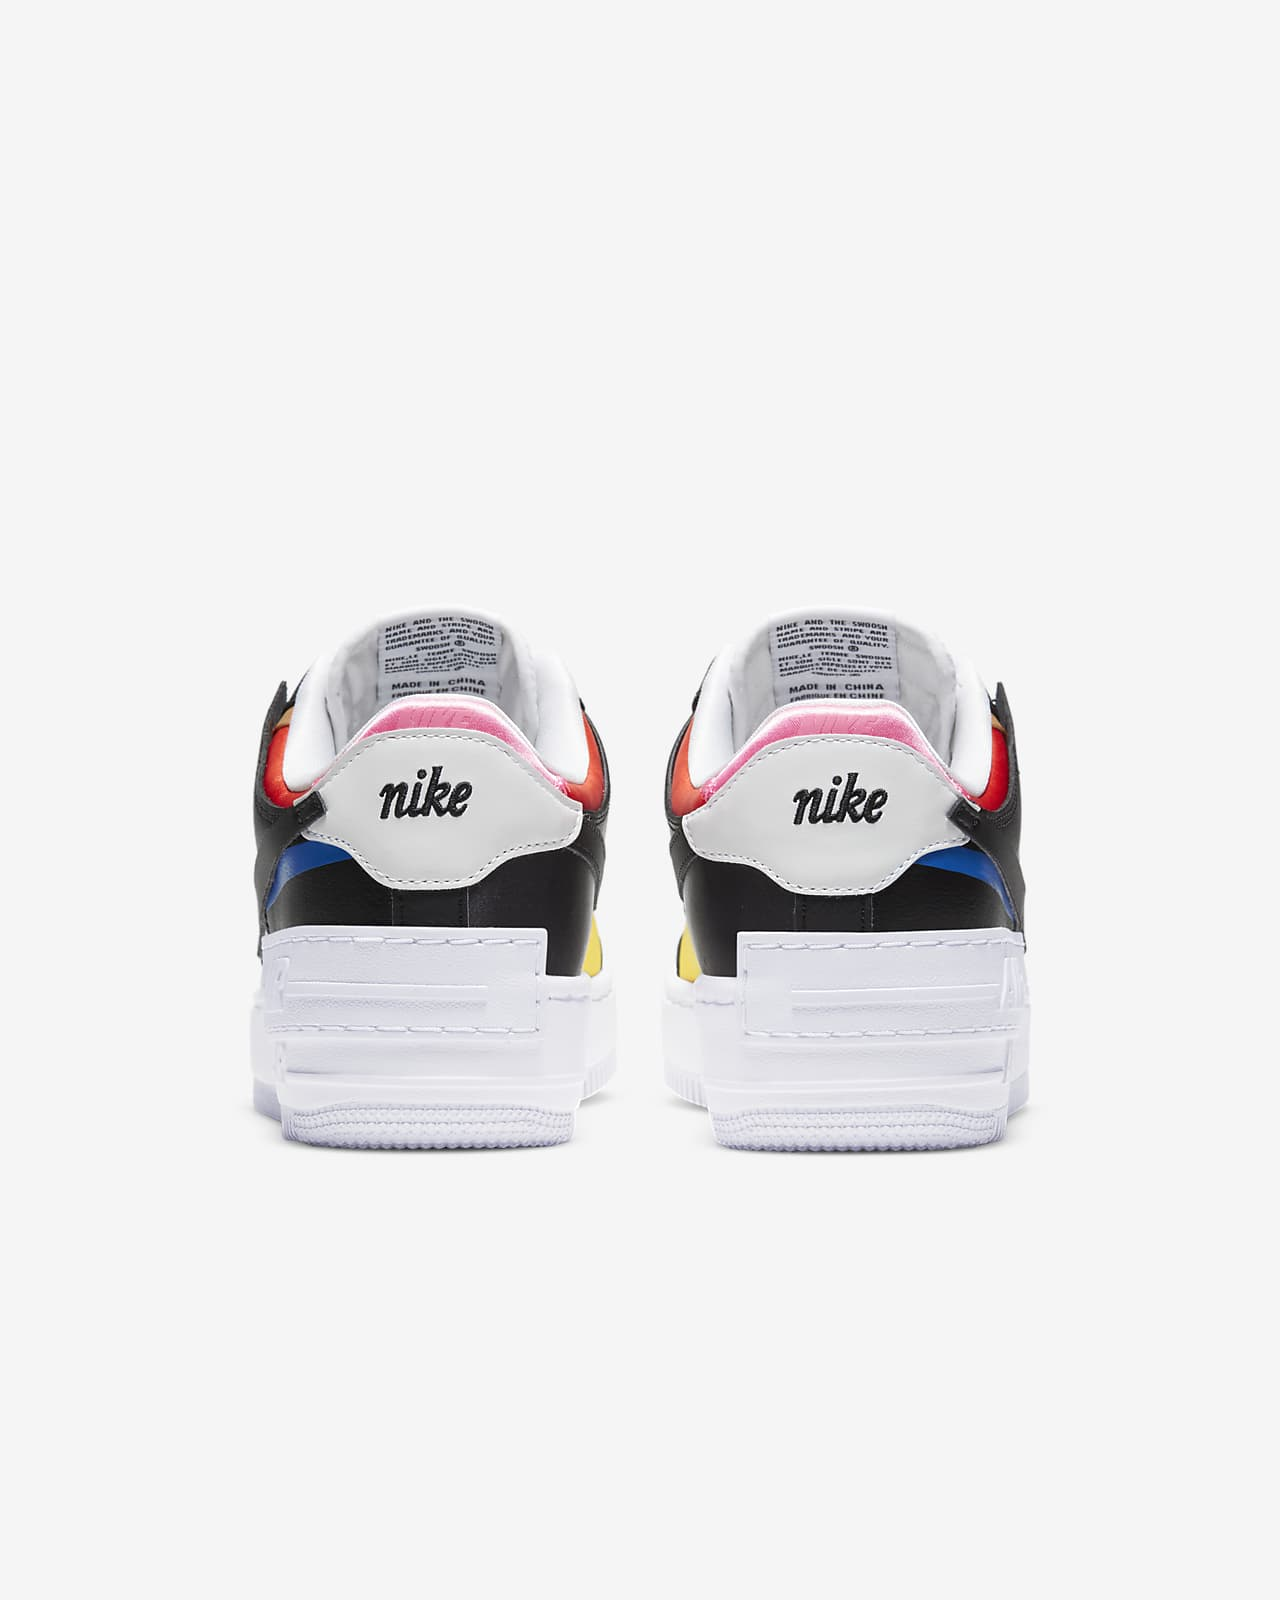 Nike Air Force 1 Shadow Women S Shoe Nike Lu Nike air force 1 '07 se 女子運動鞋. nike air force 1 shadow women s shoe